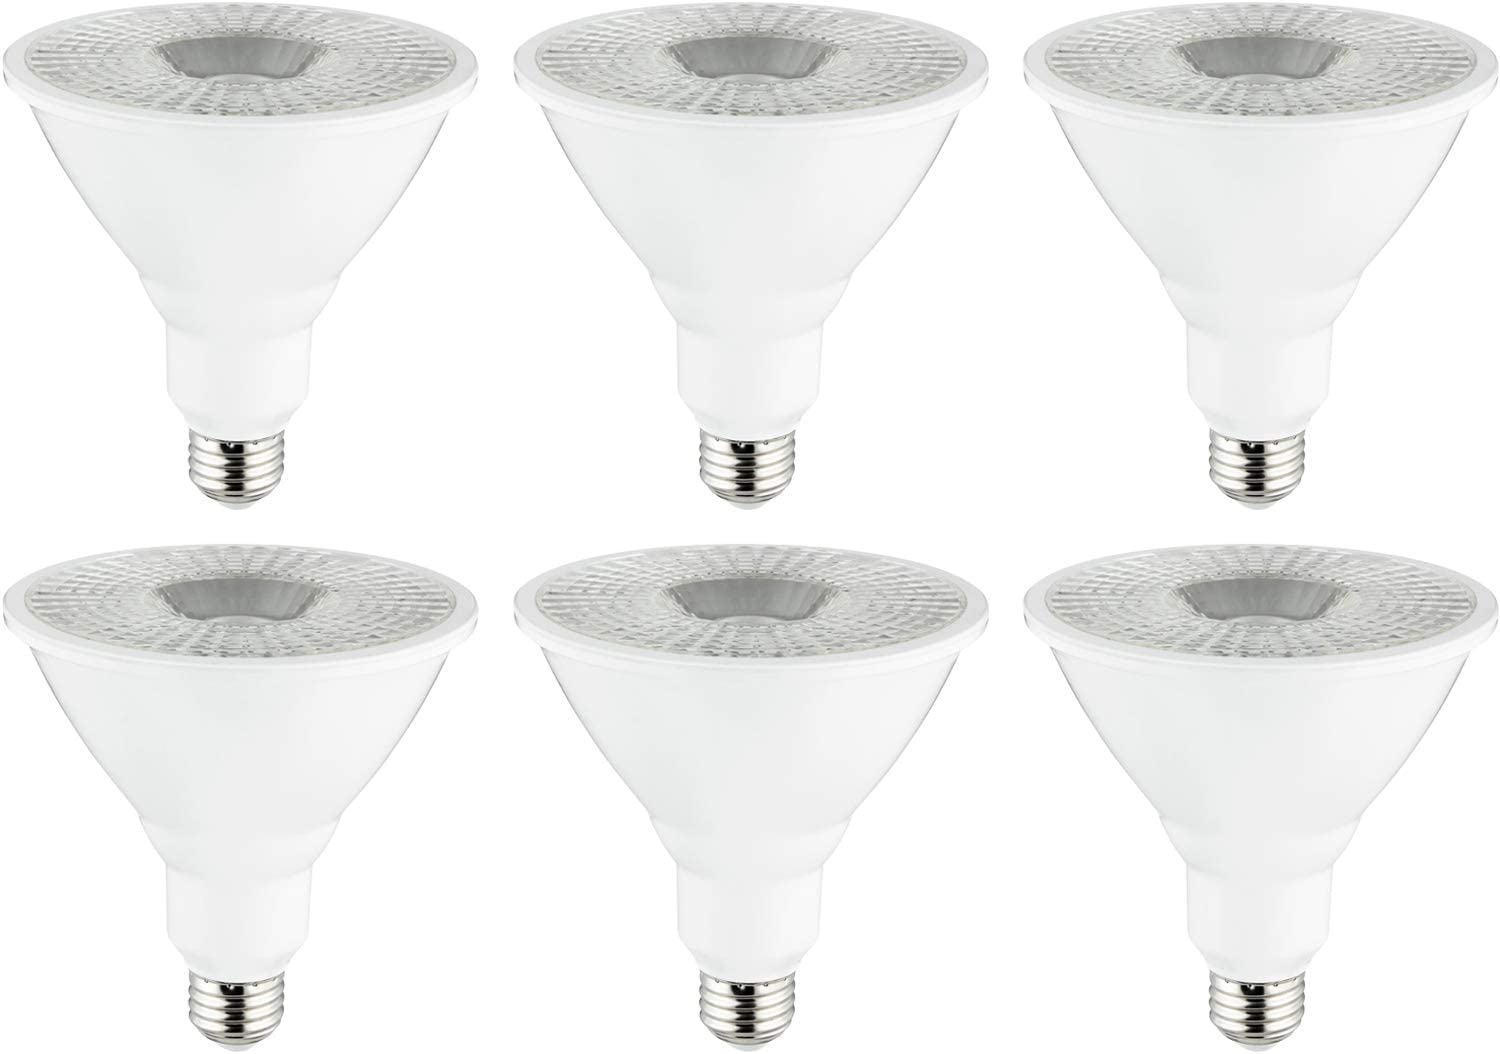 Sunlite 82034-SU LED 90 CRI PAR38 18 Reflector Watts Limited National products time sale Light Bulb